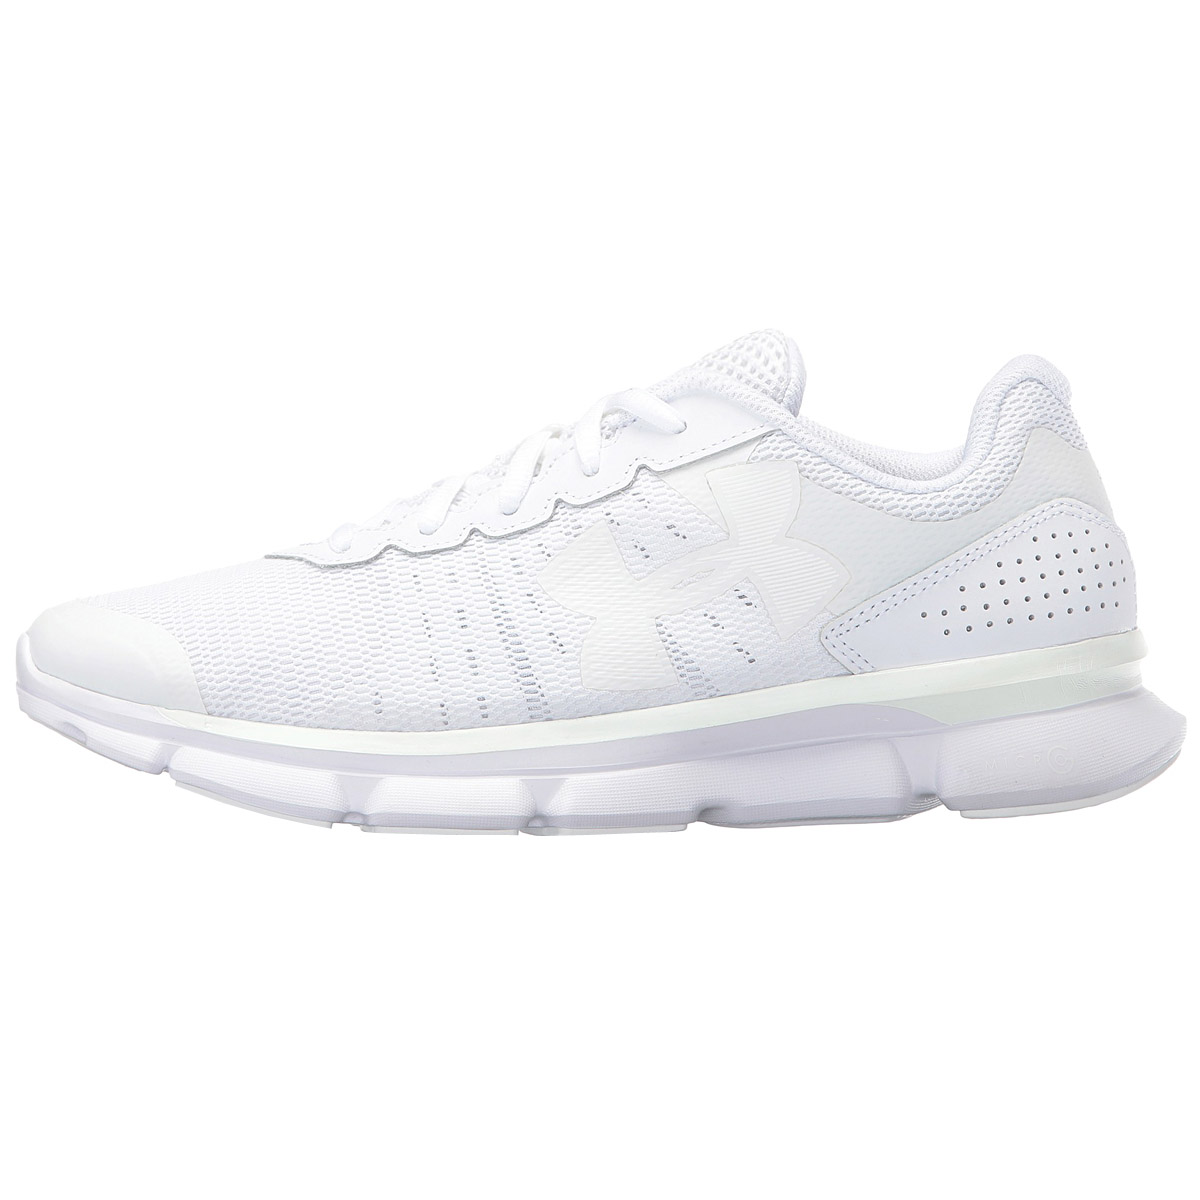 Cheap under armour lightweight shoes Buy Online  OFF60% Discounted 5b3ed0b34